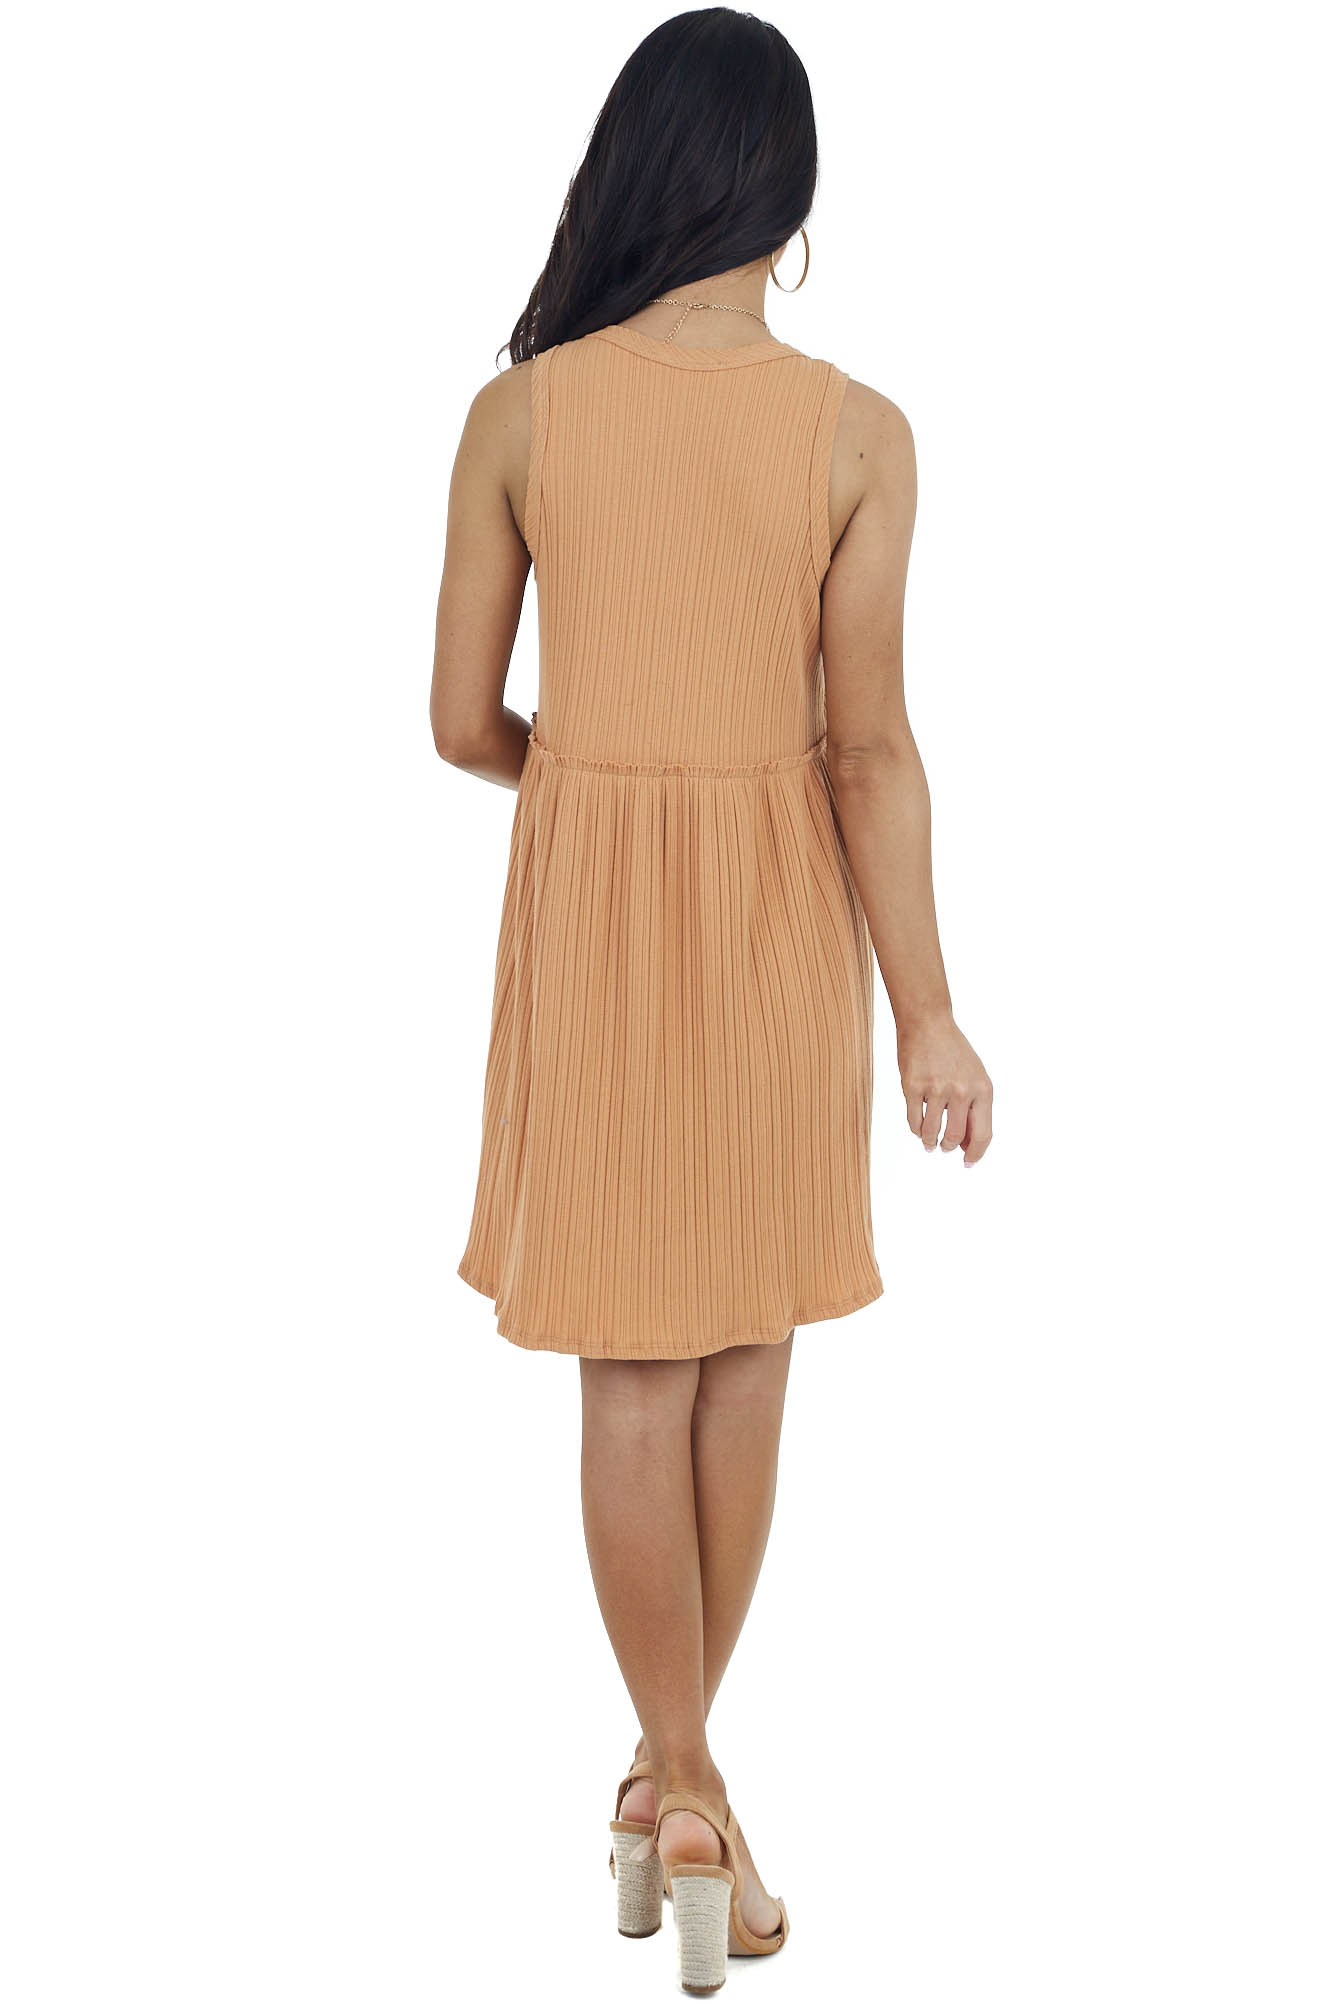 Terracotta Ribbed Knit Sleeveless Dress with Raw Edges